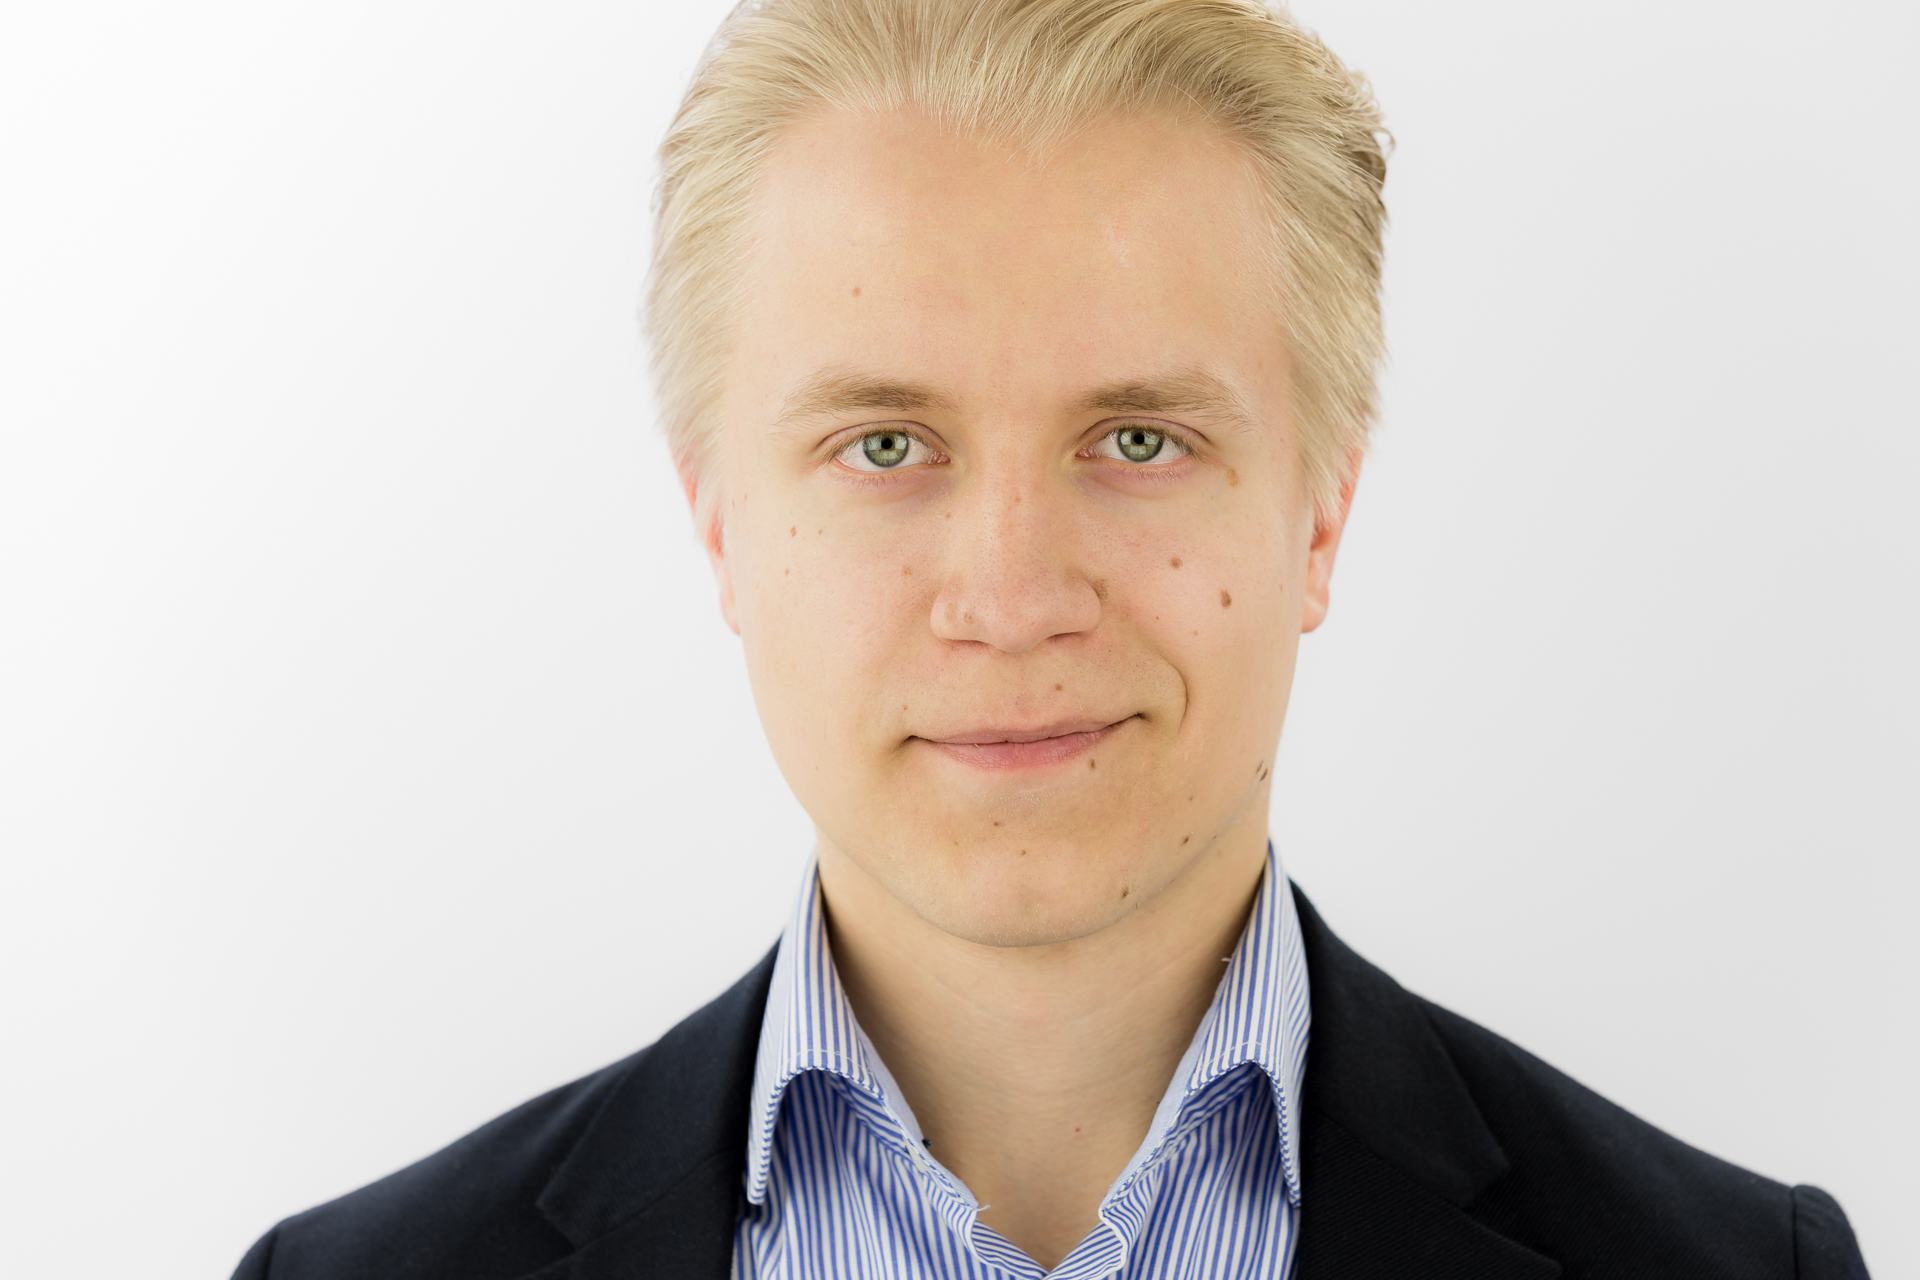 Picture of Visa Sippola, CEO and Co-Founder at Surgify